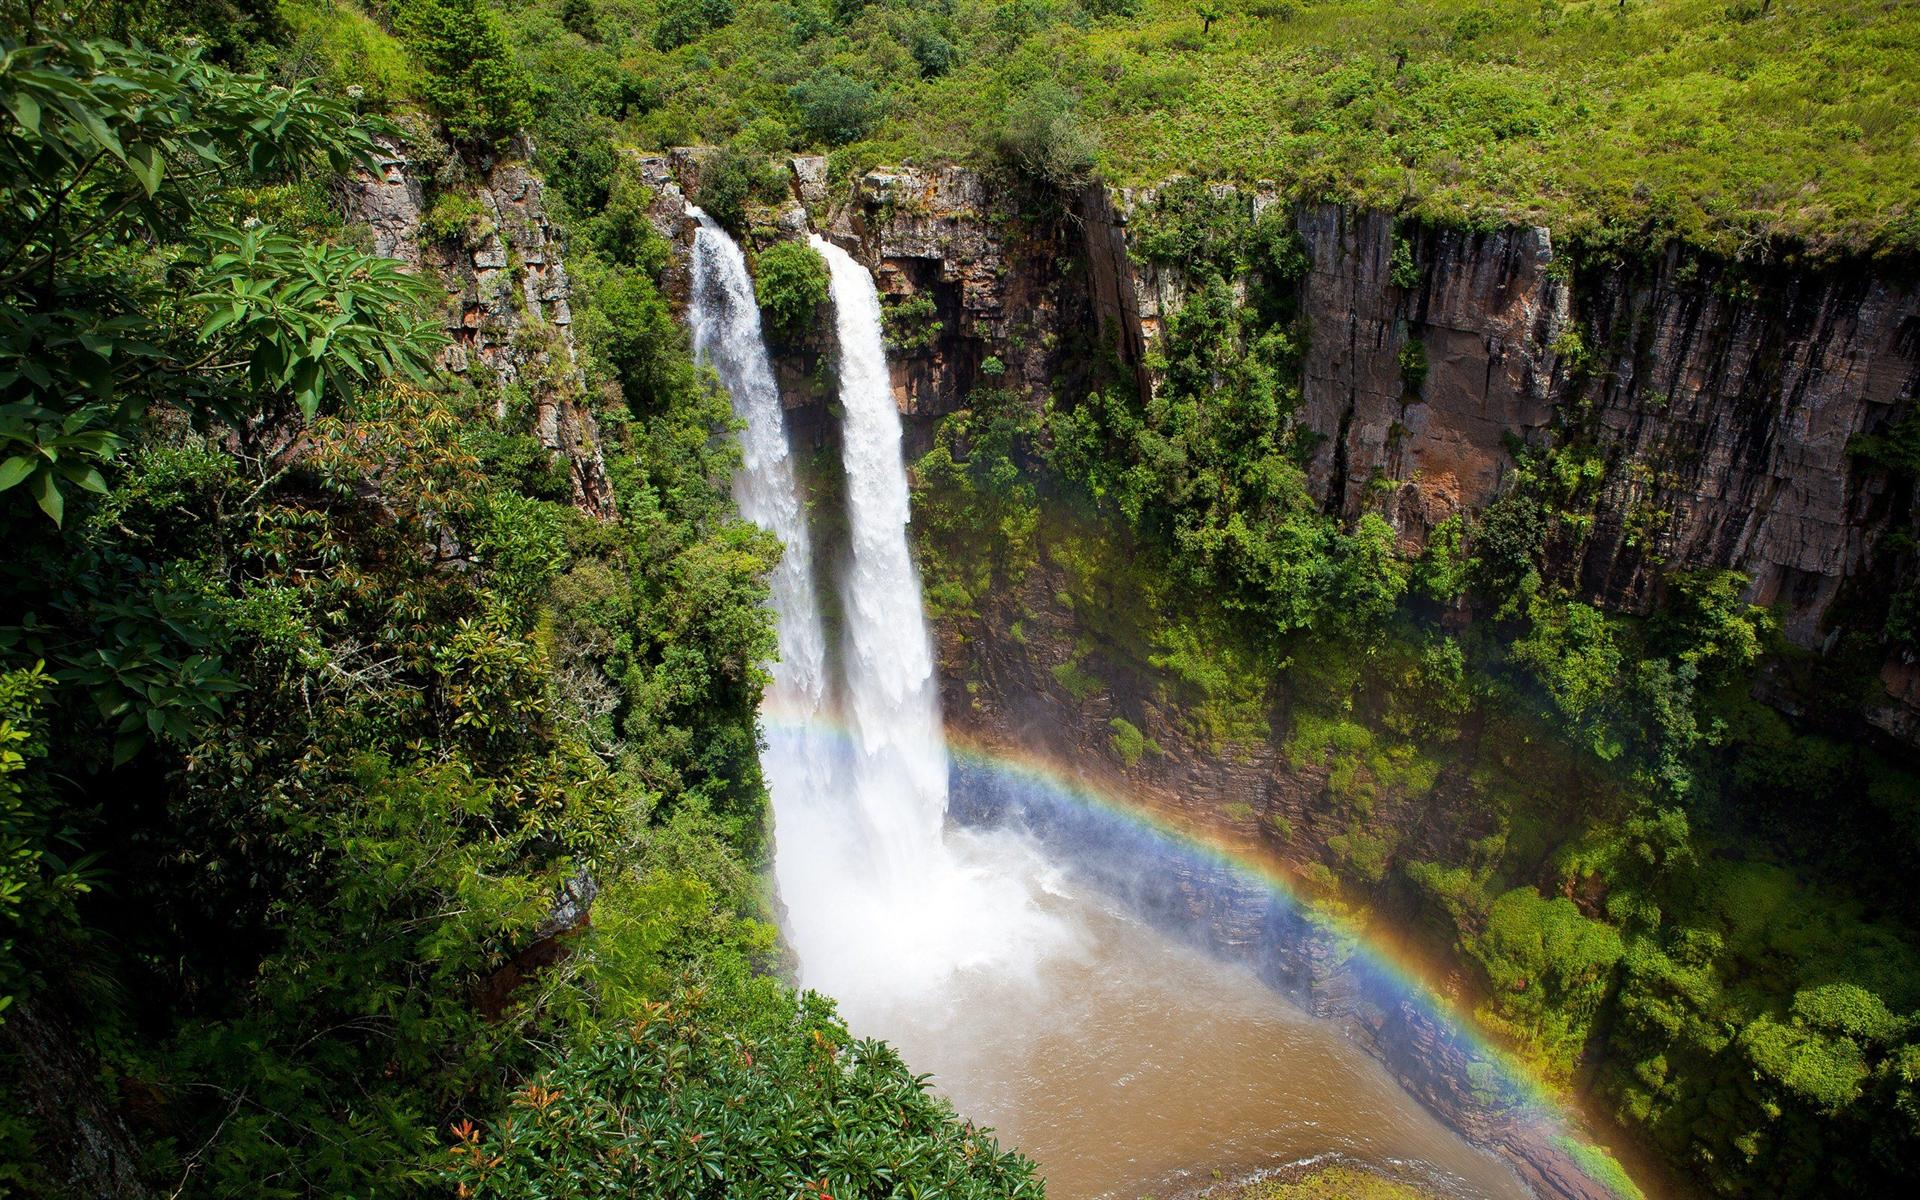 Mac Mac Falls South Africa wallpaper   850546 1920x1200